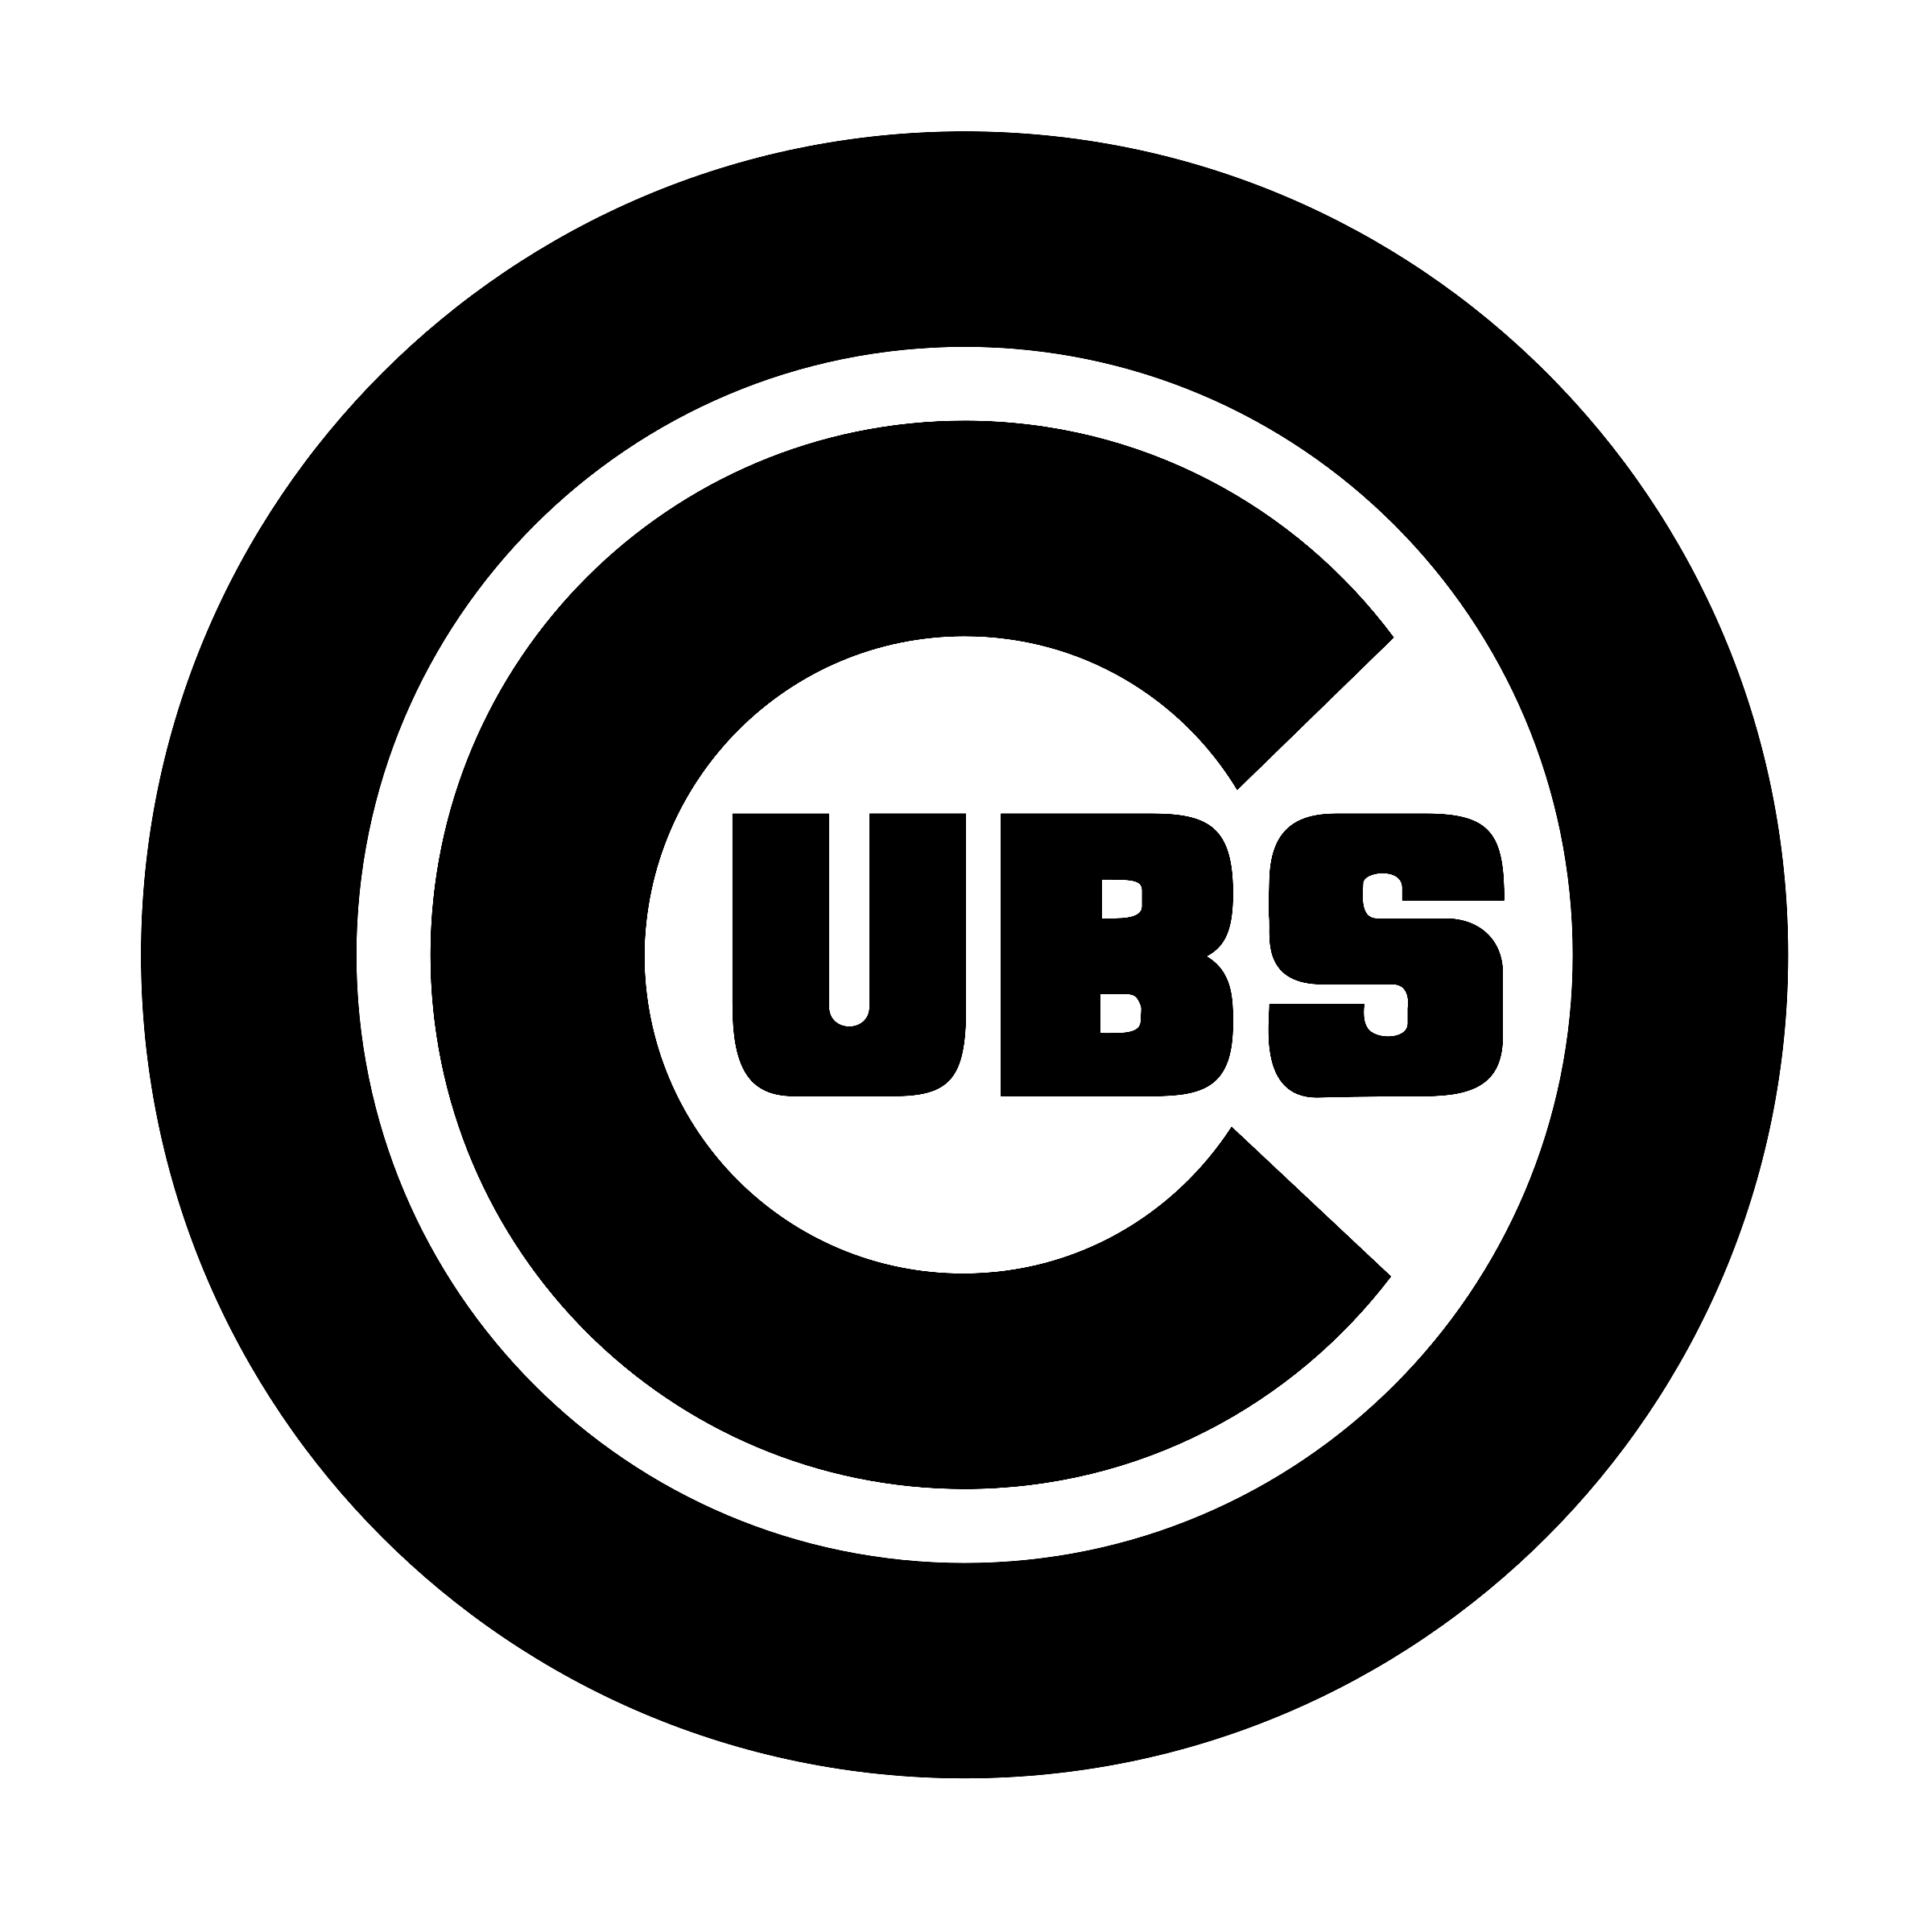 Chicago cubs c logo png. Transparent svg vector freebie